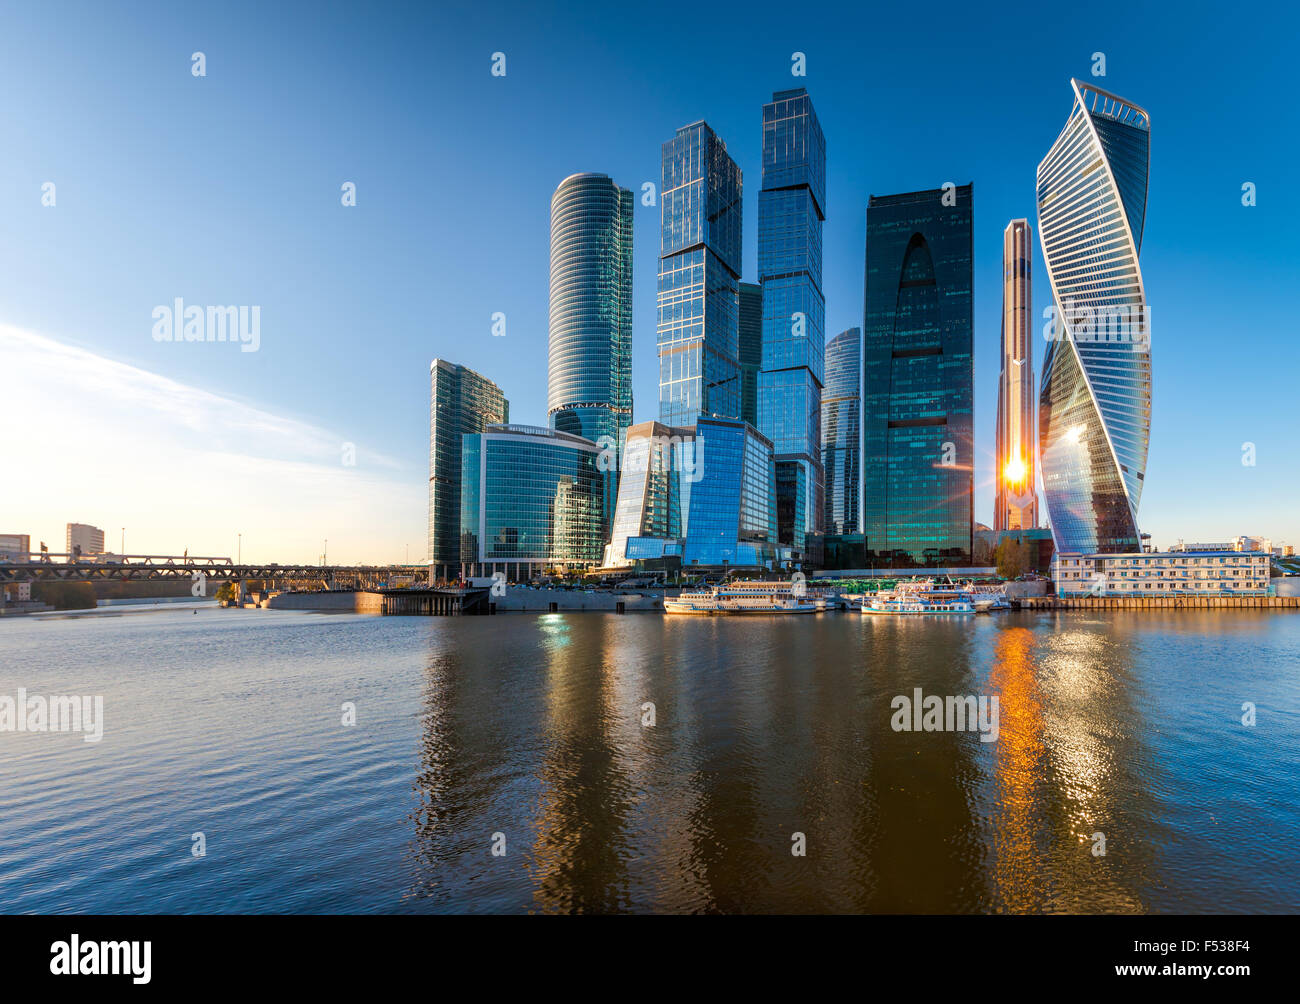 Moscow City - view of skyscrapers Moscow International Business Center. - Stock Image